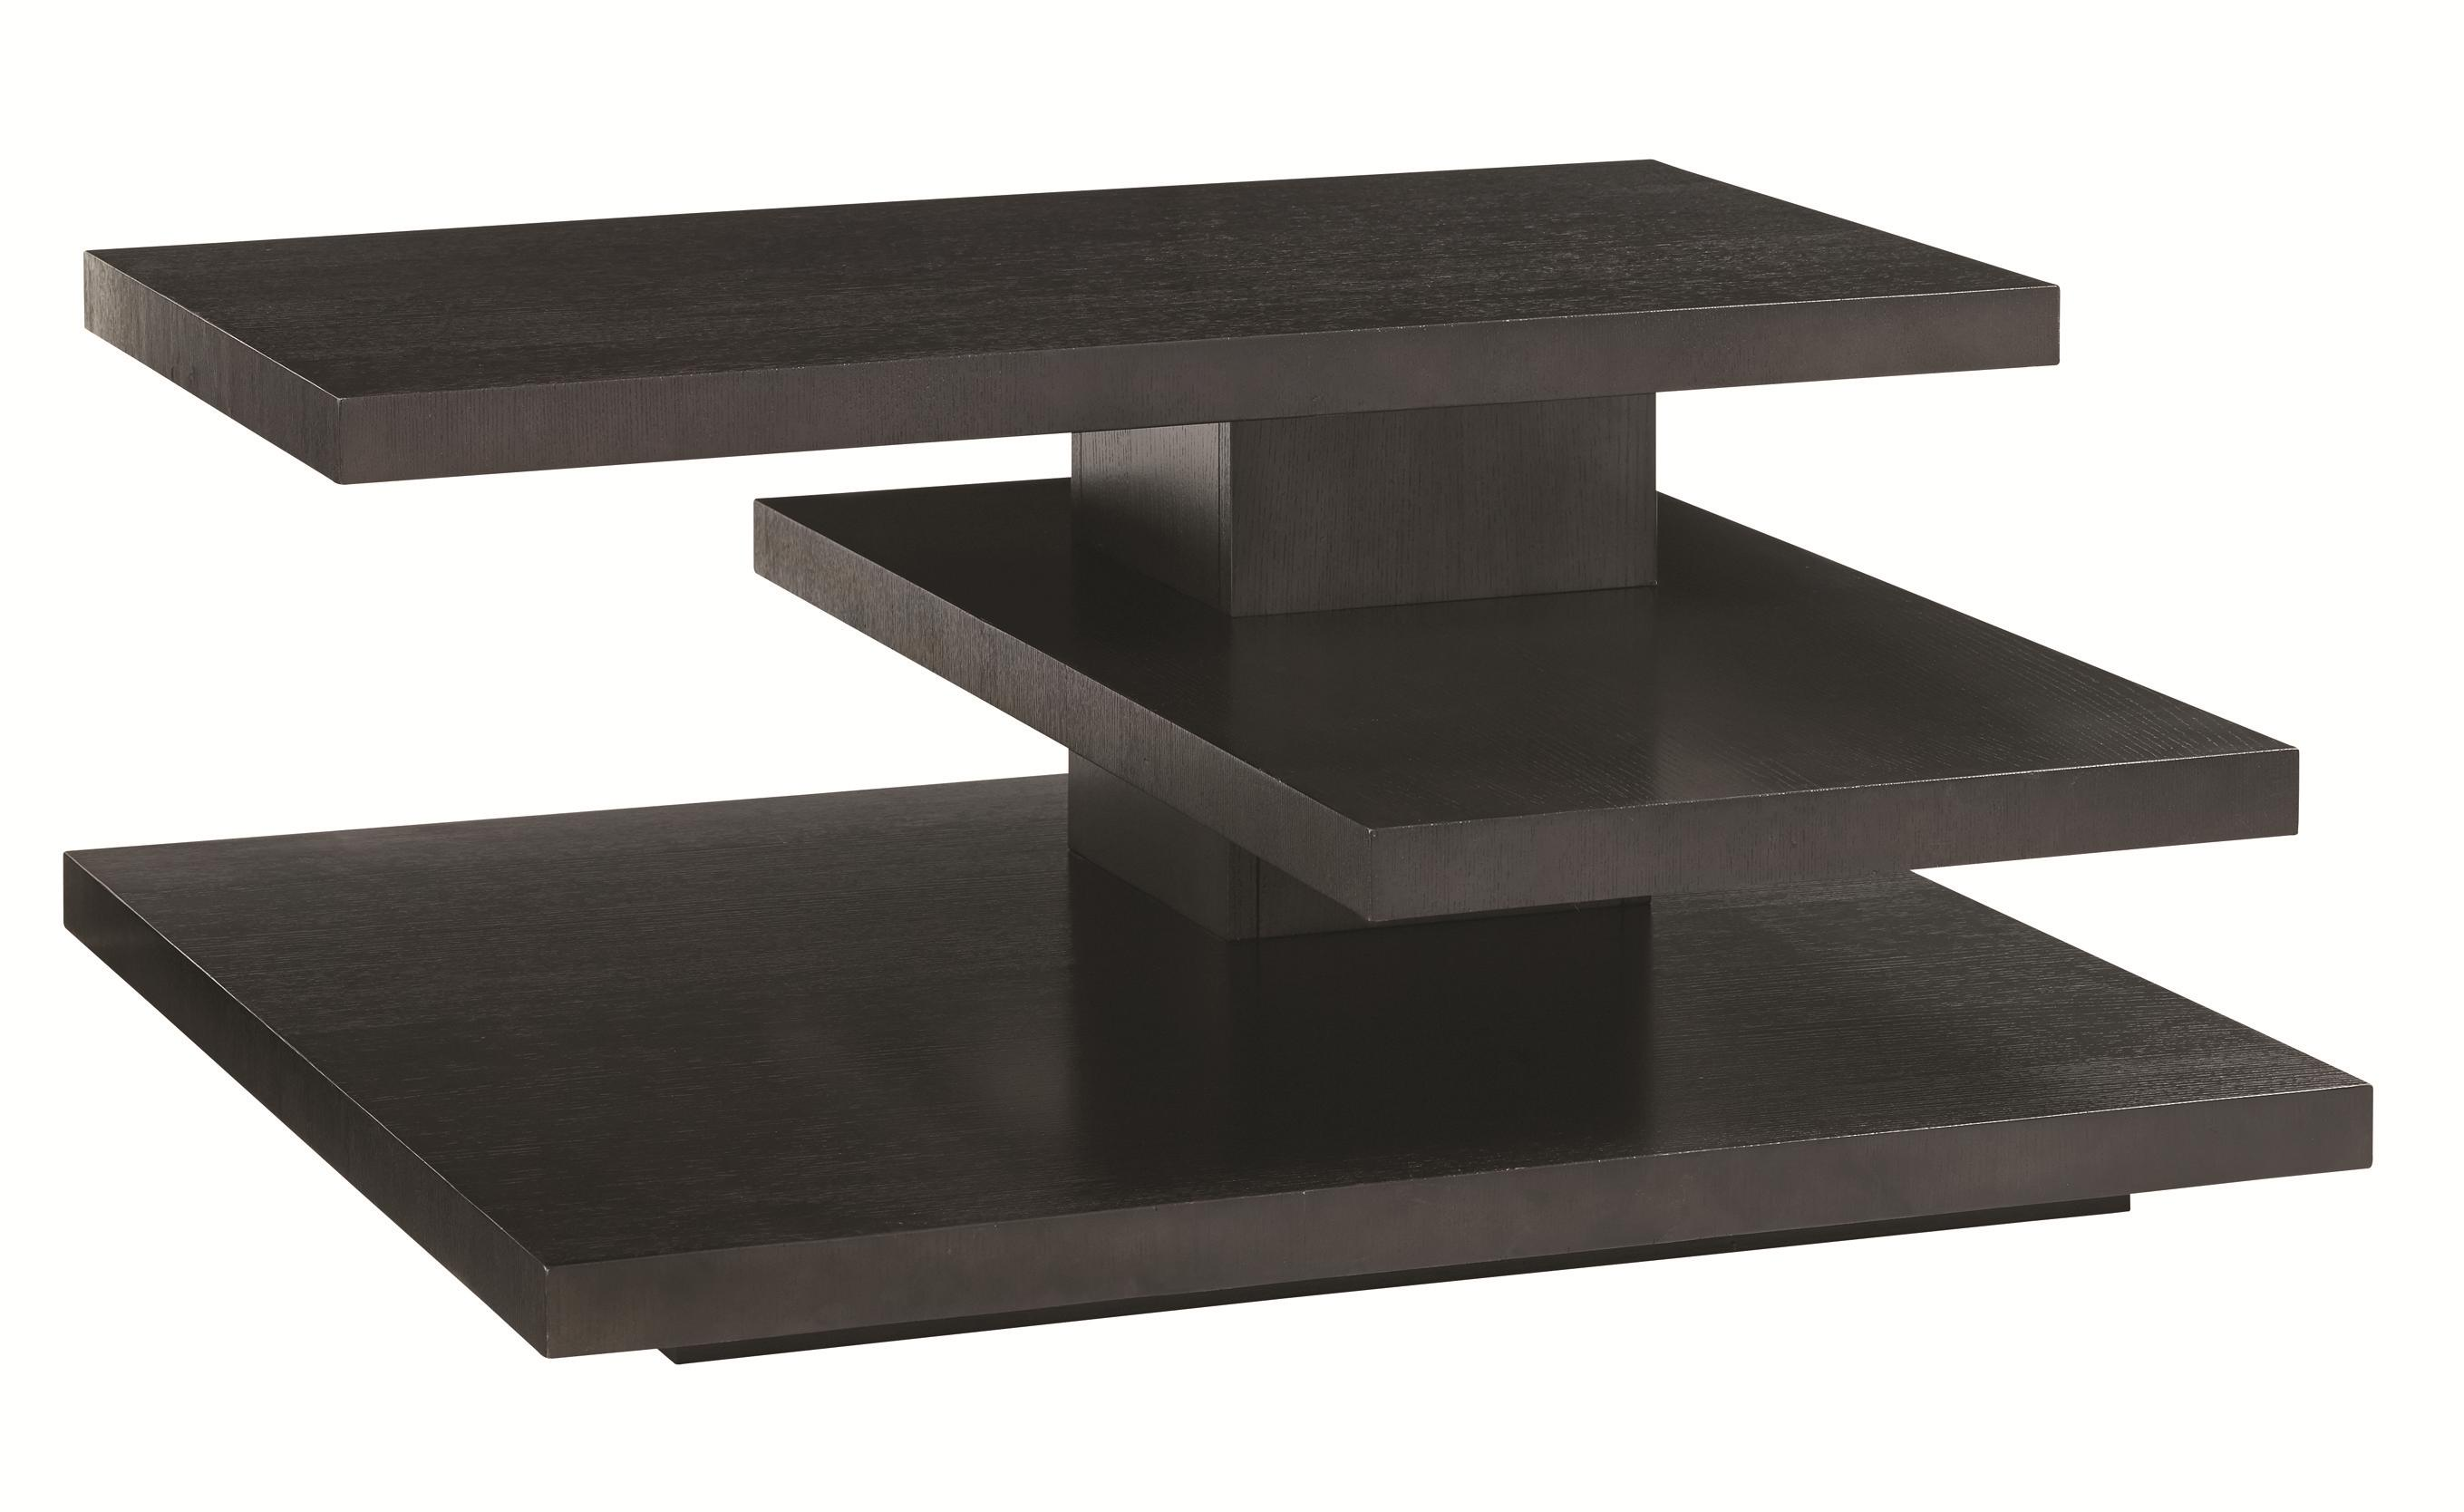 Carrera Evora Square Cocktail Table by Lexington at Baer's Furniture